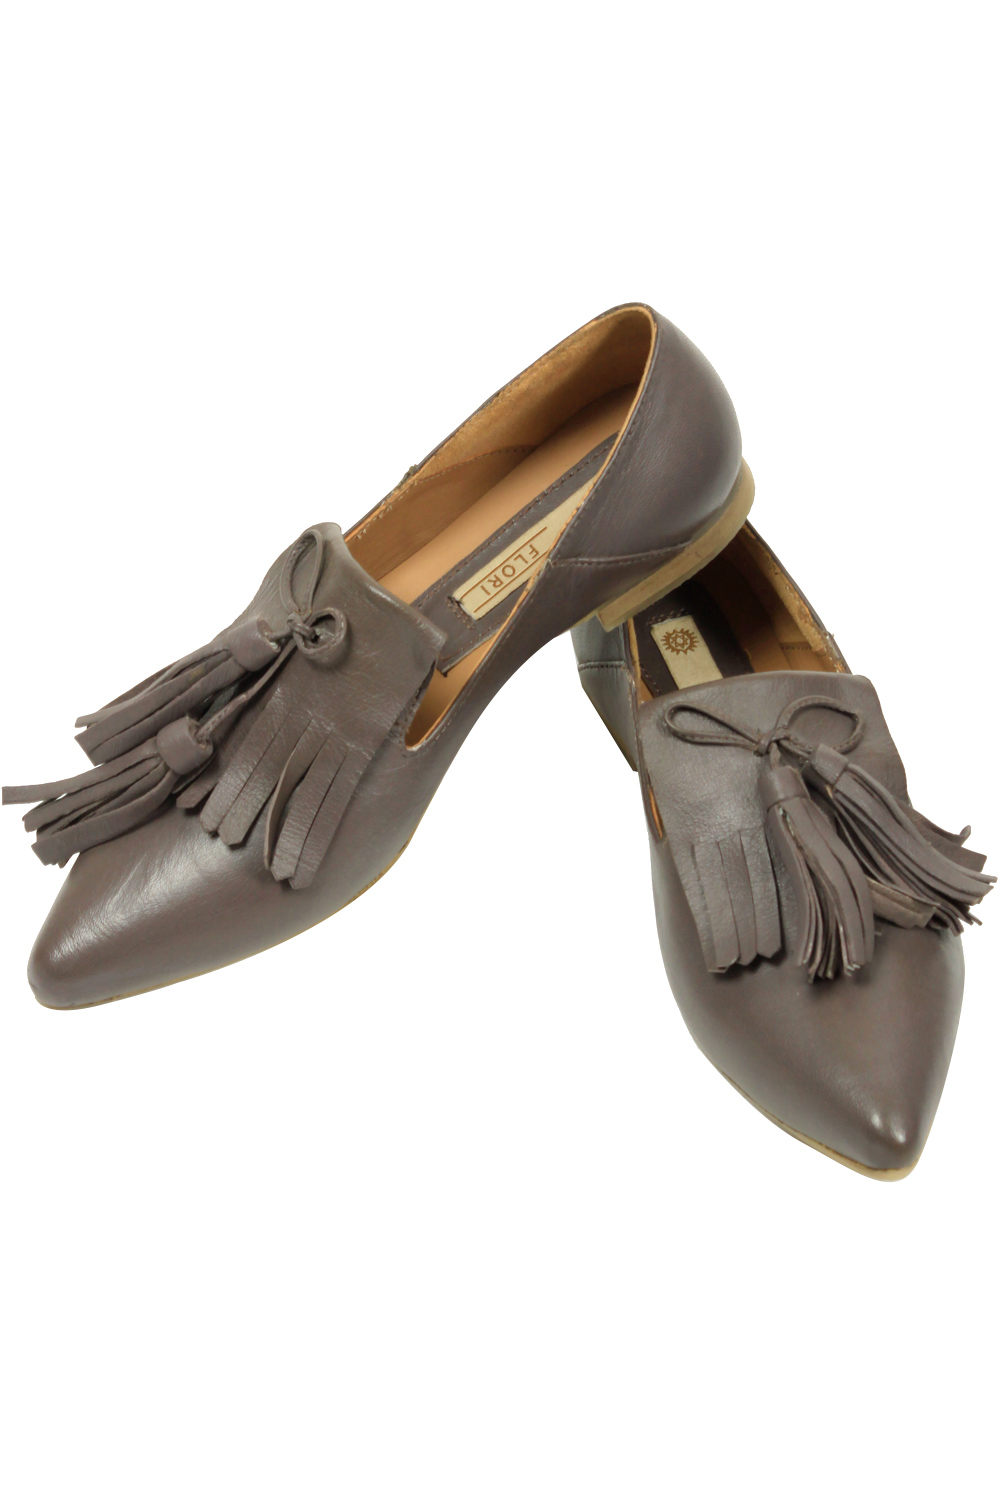 discount sale official shop 2018 sneakers Mud brown pointed flats by Flori   Carmaonline shop